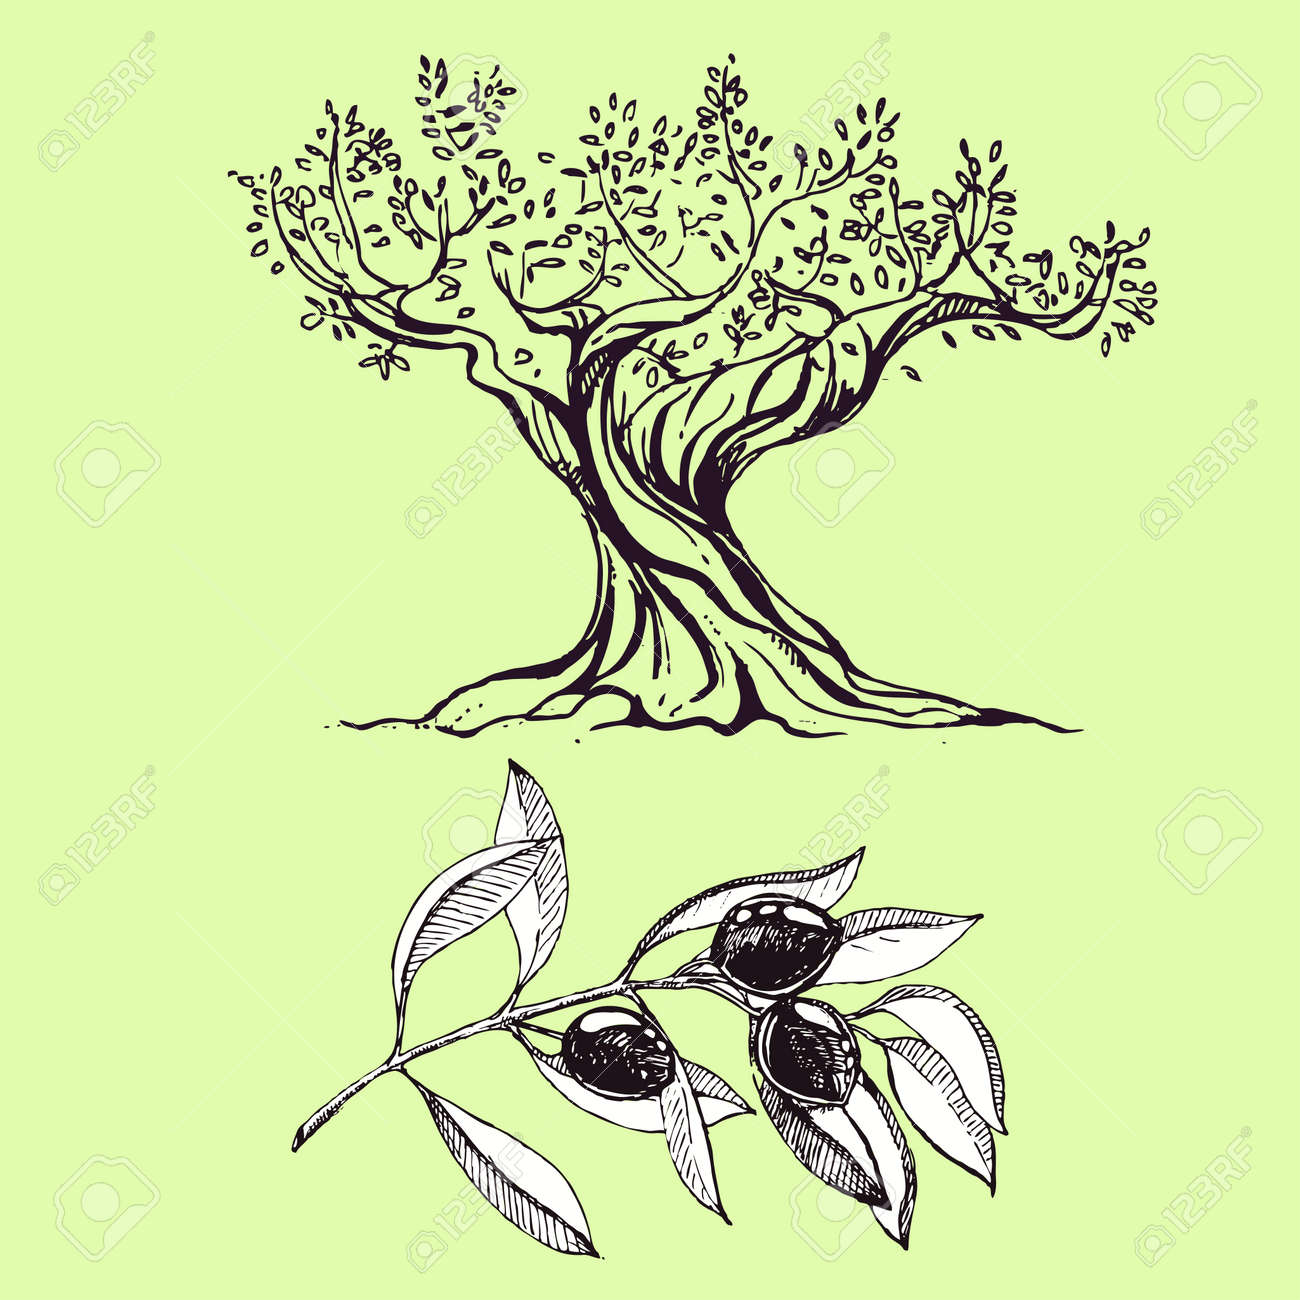 944 Olive Tree Vector Cliparts, Stock Vector And Royalty Free Olive ...